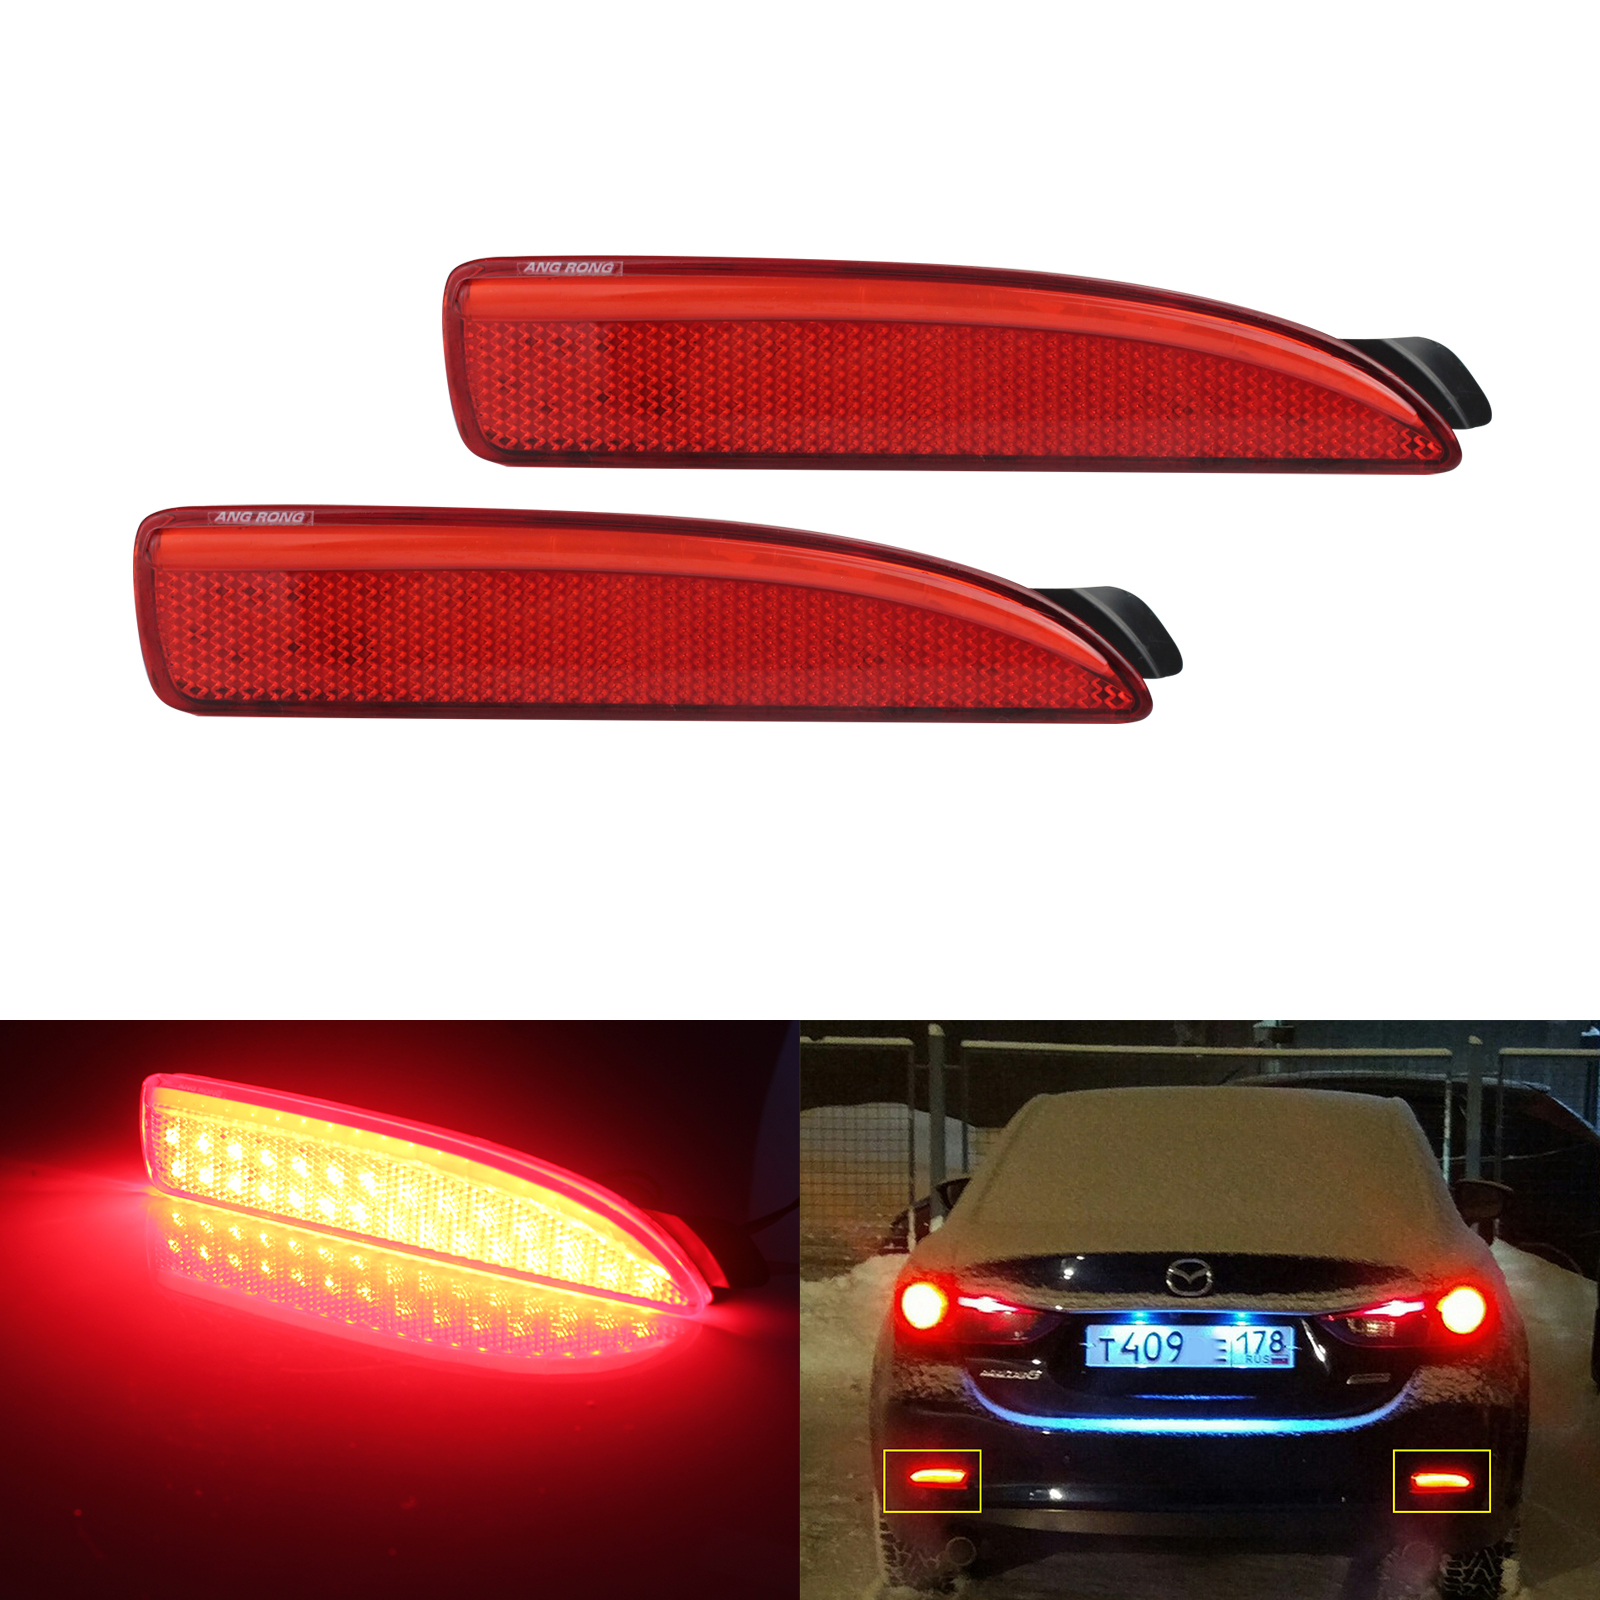 ANGRONG 2x Red Rear Bumper Reflector LED Tail Stop <font><b>Light</b></font> For <font><b>Mazda</b></font> <font><b>6</b></font> Atenza 2013+ For Mazda3 4D image